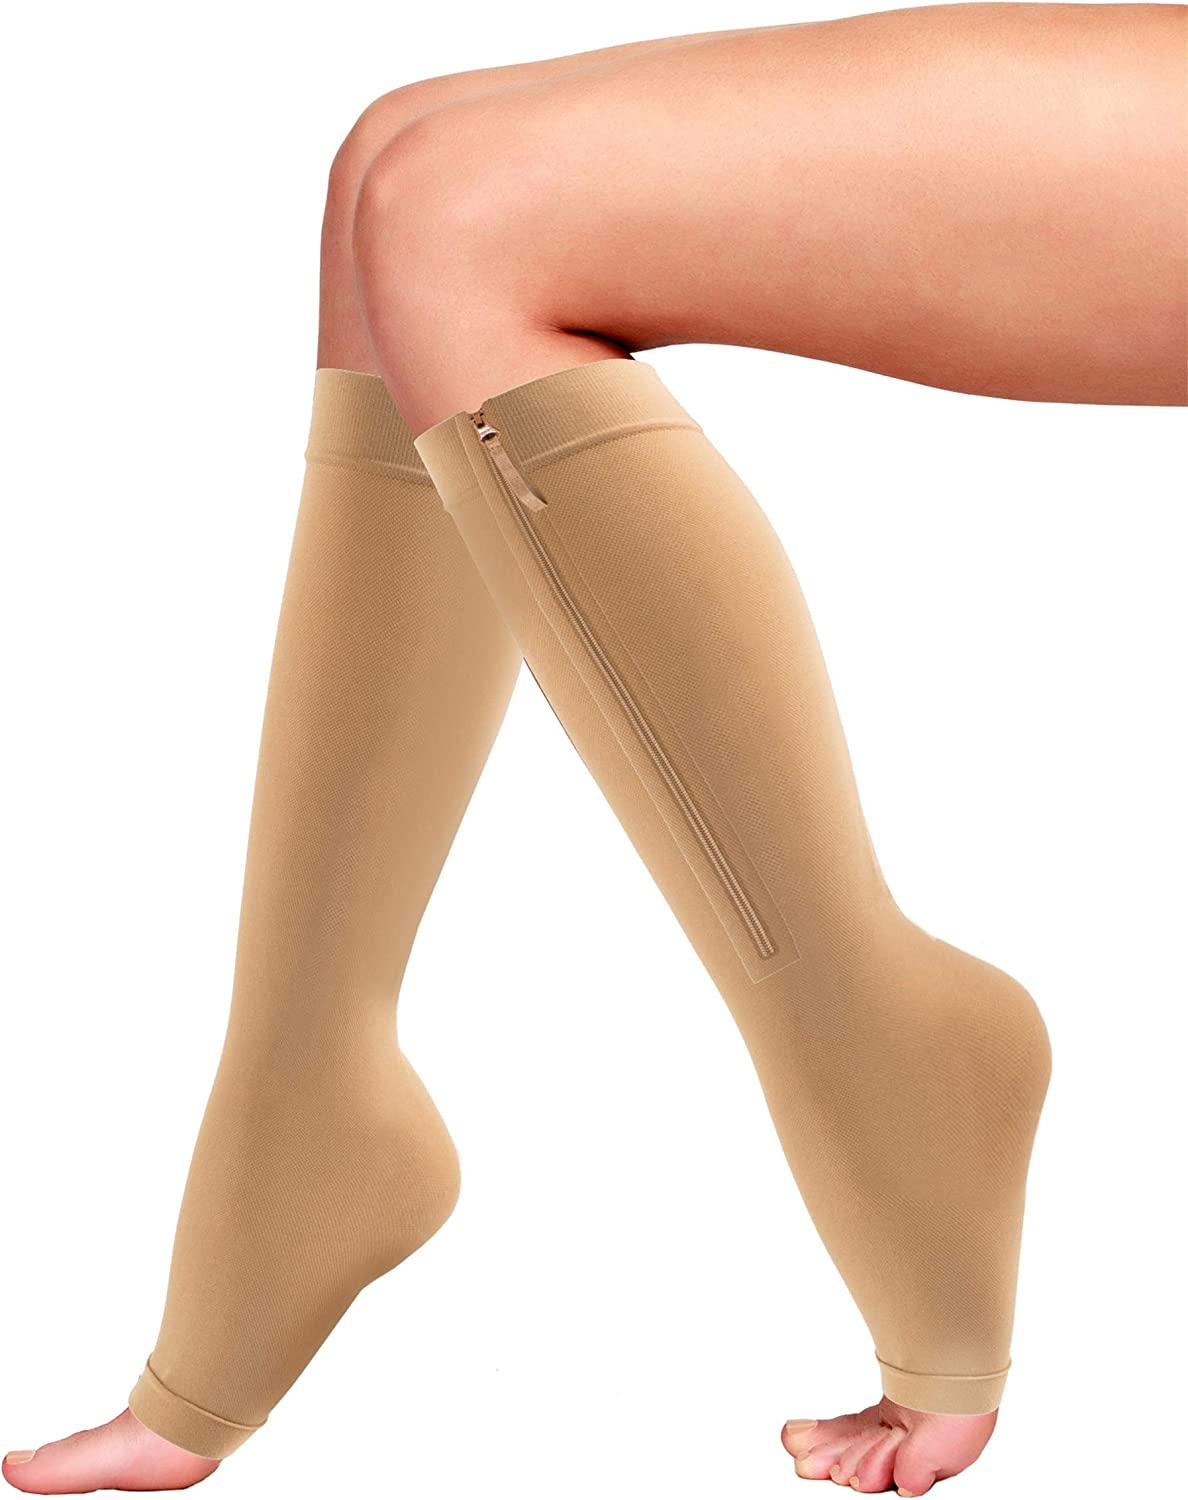 Bluestone Our shop most popular Zipper Compression Sock safety 20-30mmhg Men Women for and